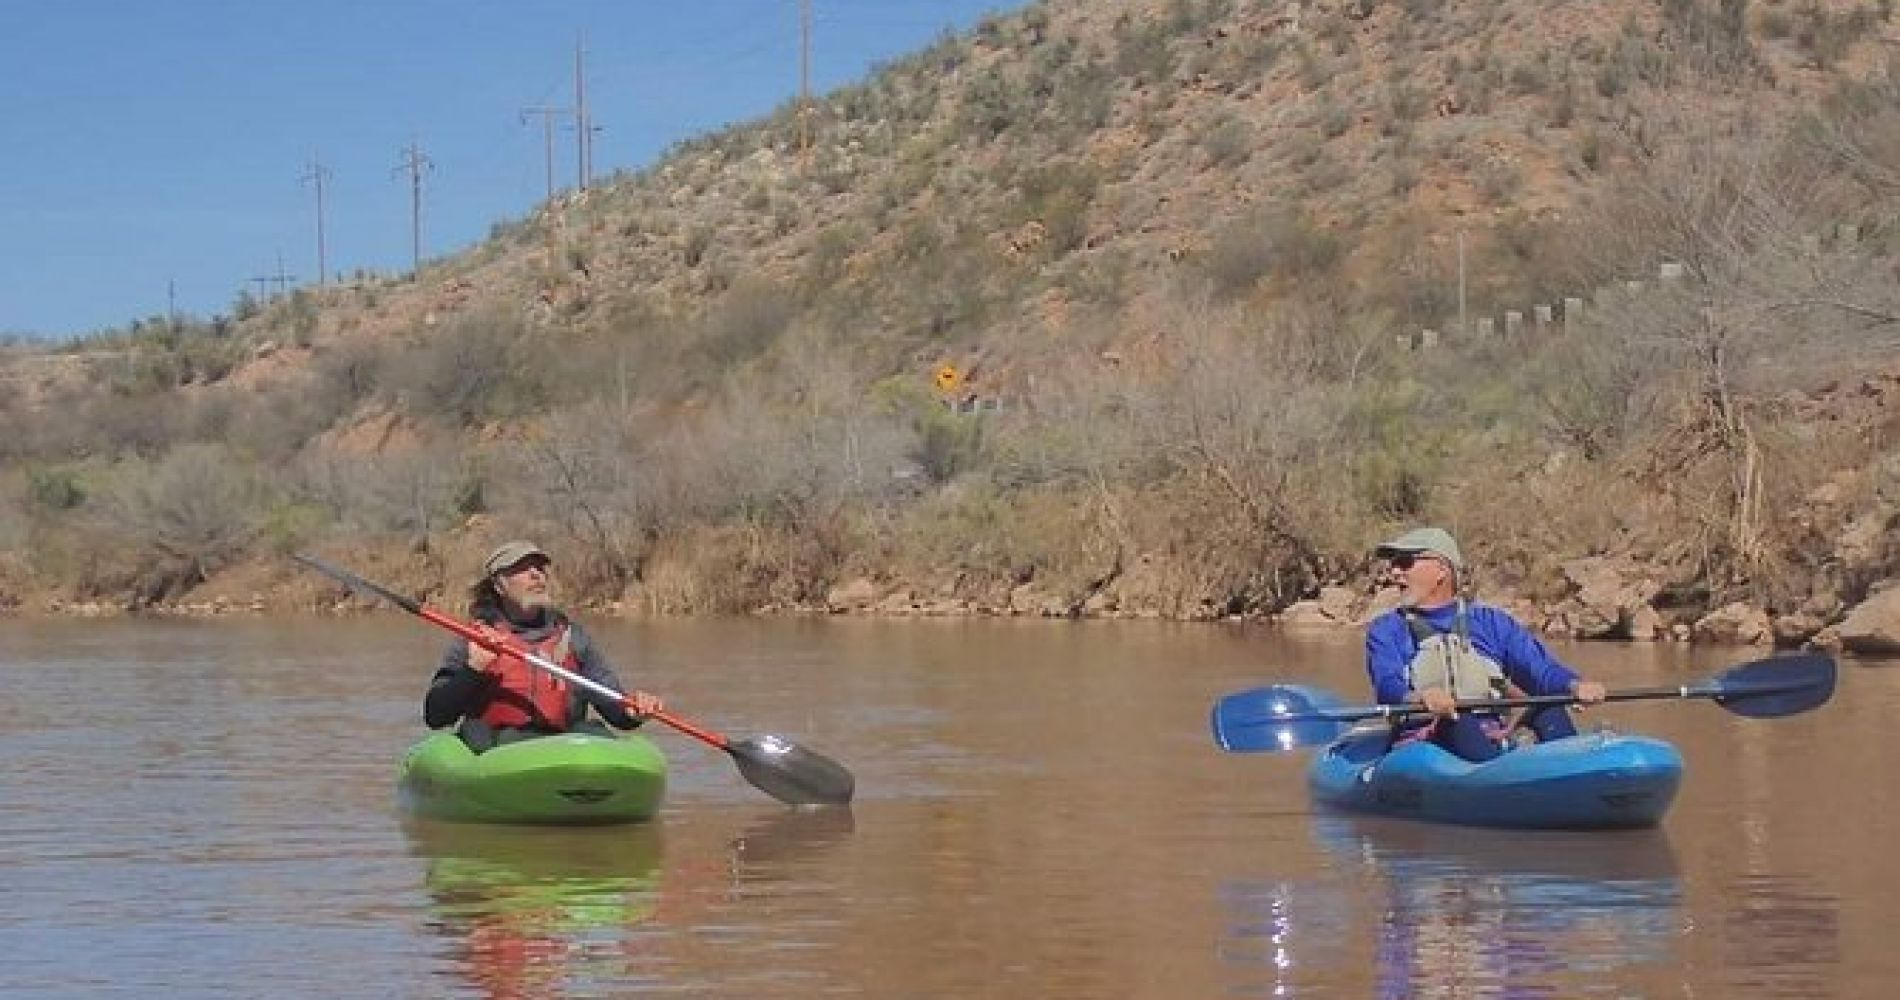 Classic River Run on the Verde